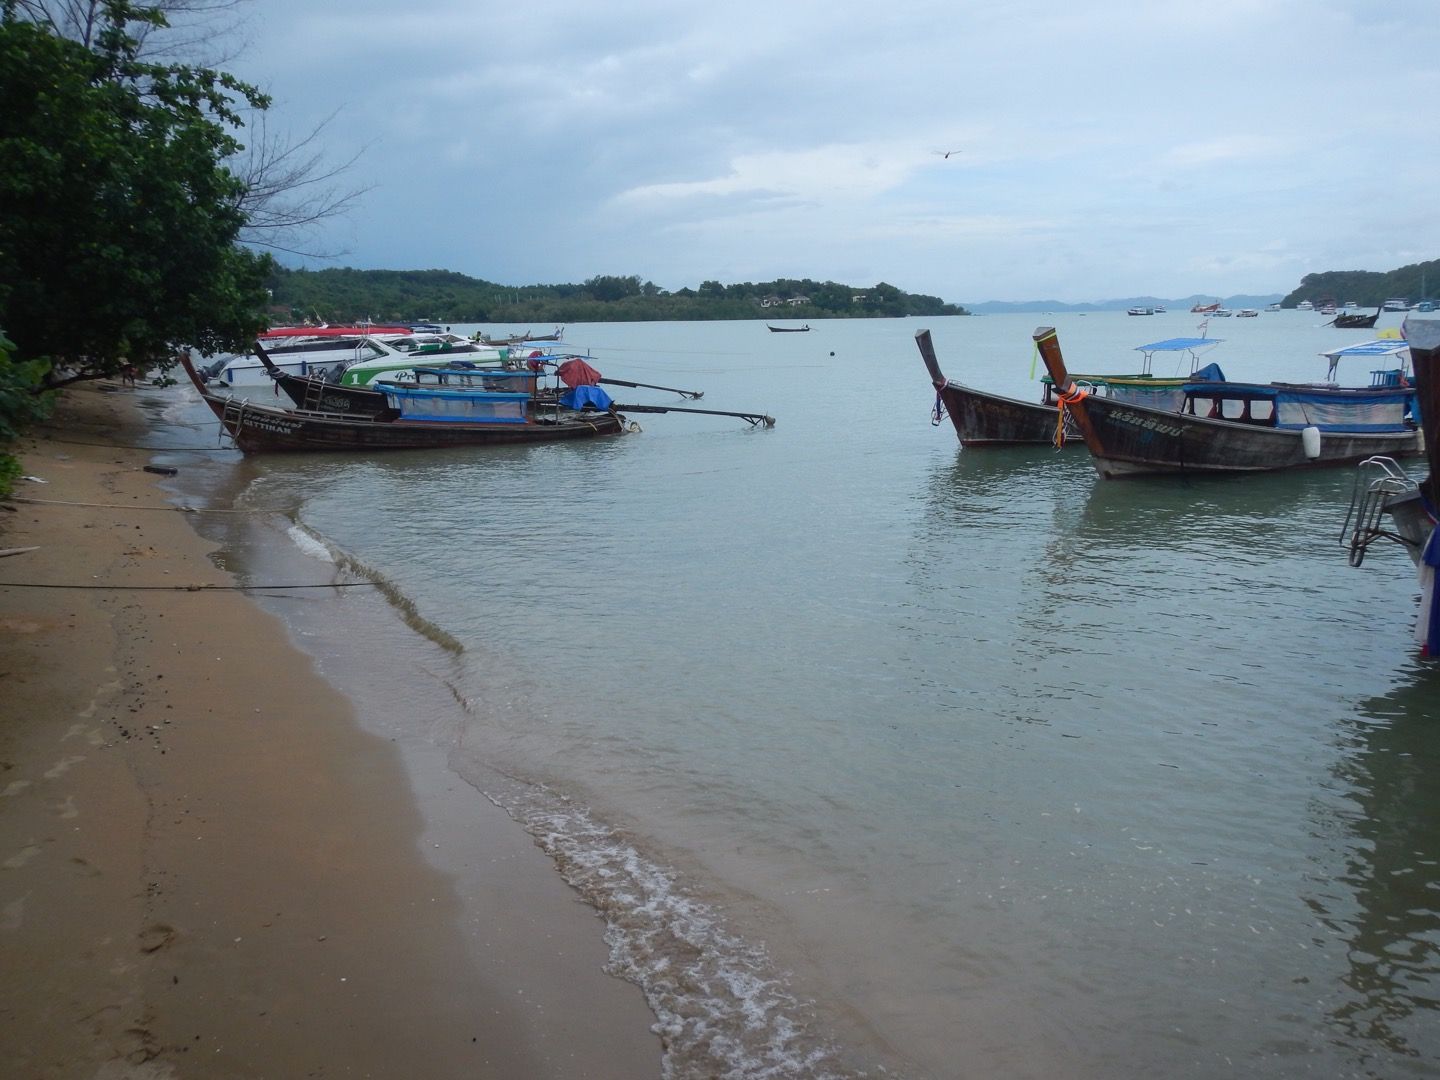 Boats docked at a beach in Thailand